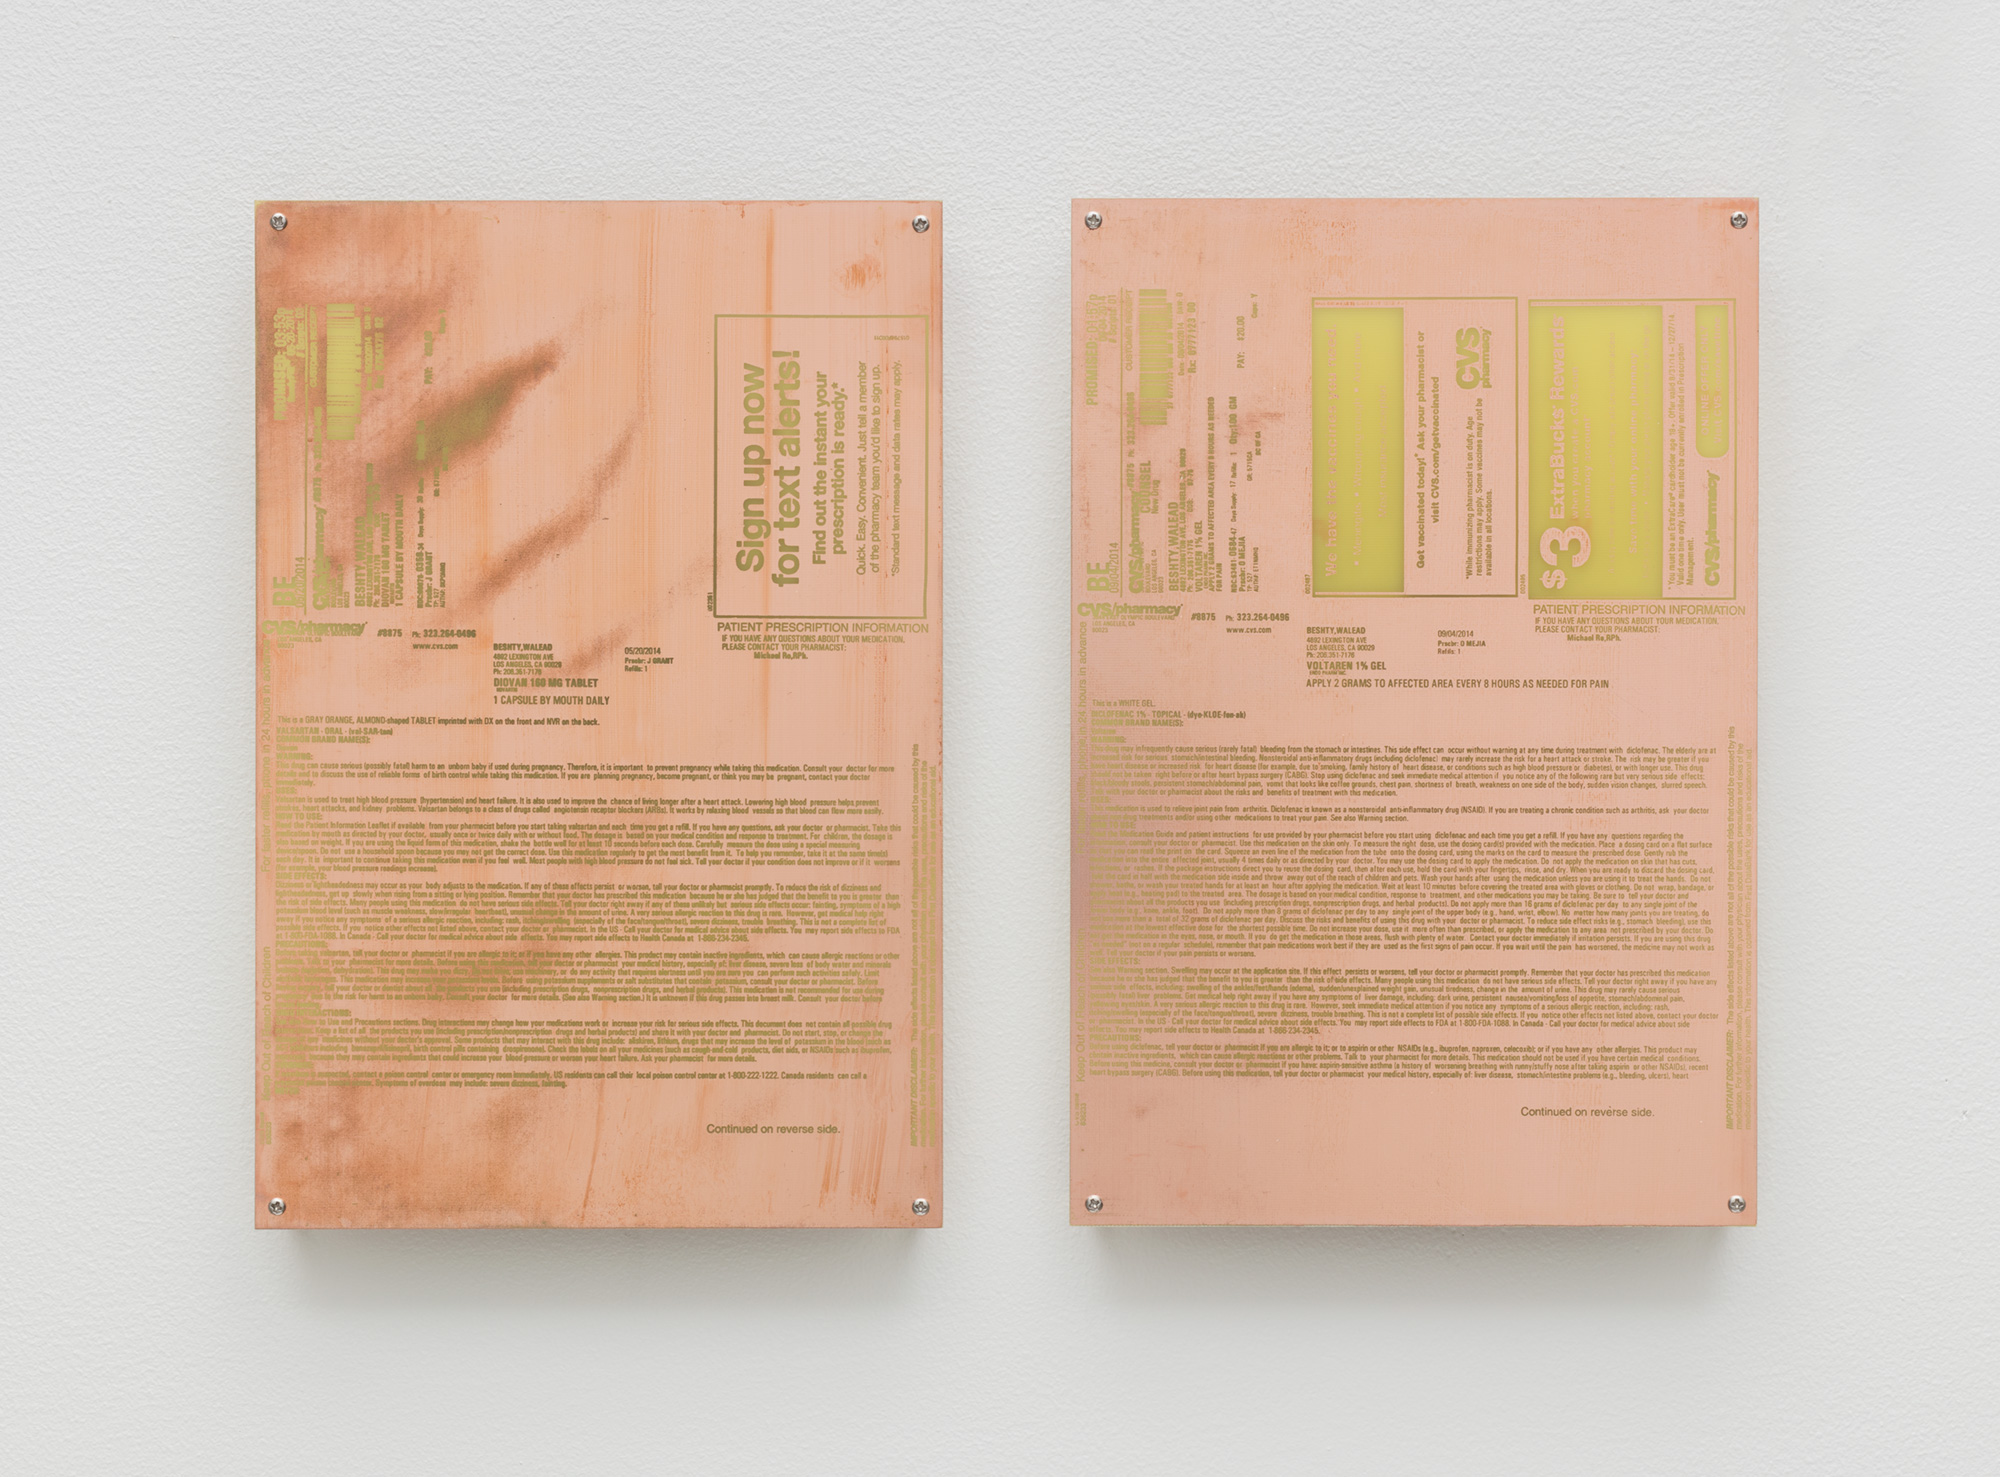 Body Prints (Diovan 160mg Tablet [May 20, 2014]; Voltaren 1% Gel [September 4, 2014])   2018  Etched copper-clad FR-4 glass-reinforced epoxy laminate board  12 x 8 inches each, 2 parts   Body Prints, 2017–    Equivalents, 2018